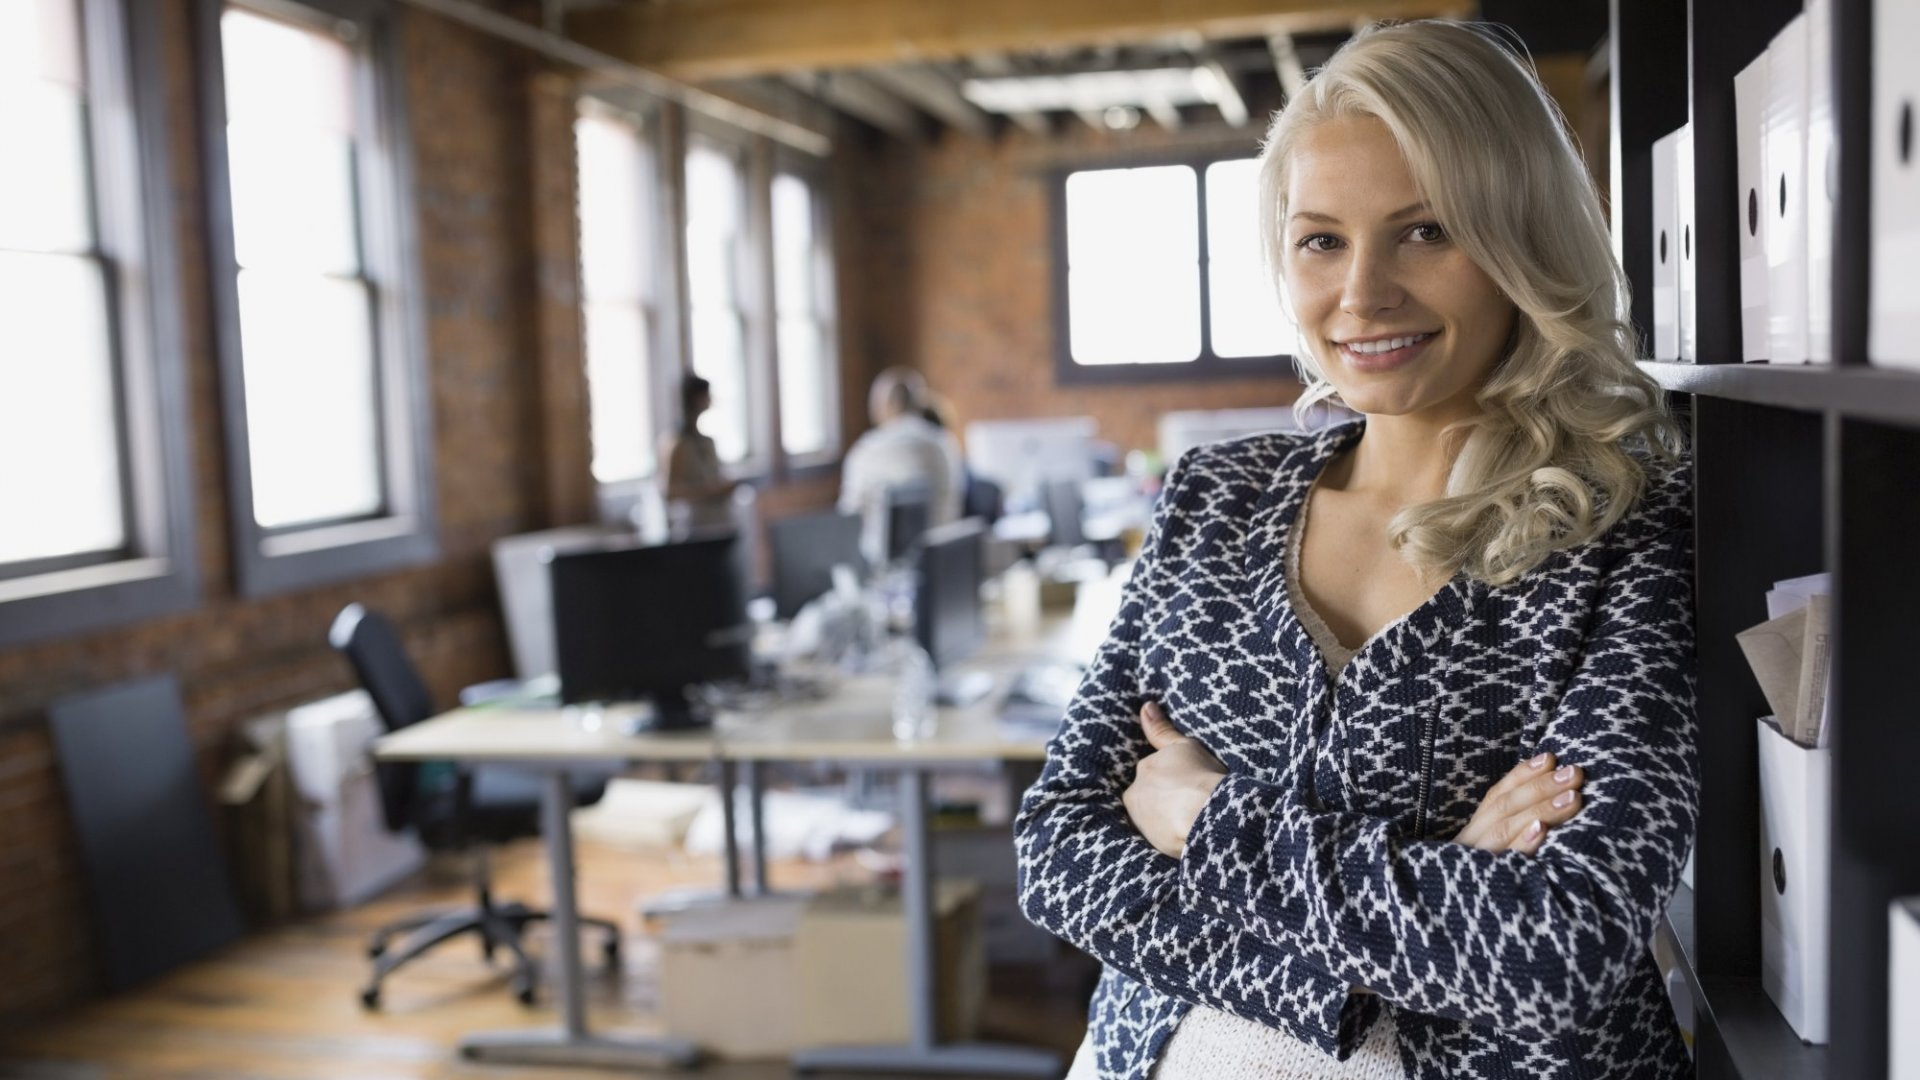 3 Ways to Succeed as a Woman Entrepreneur (They're Not What You Think)